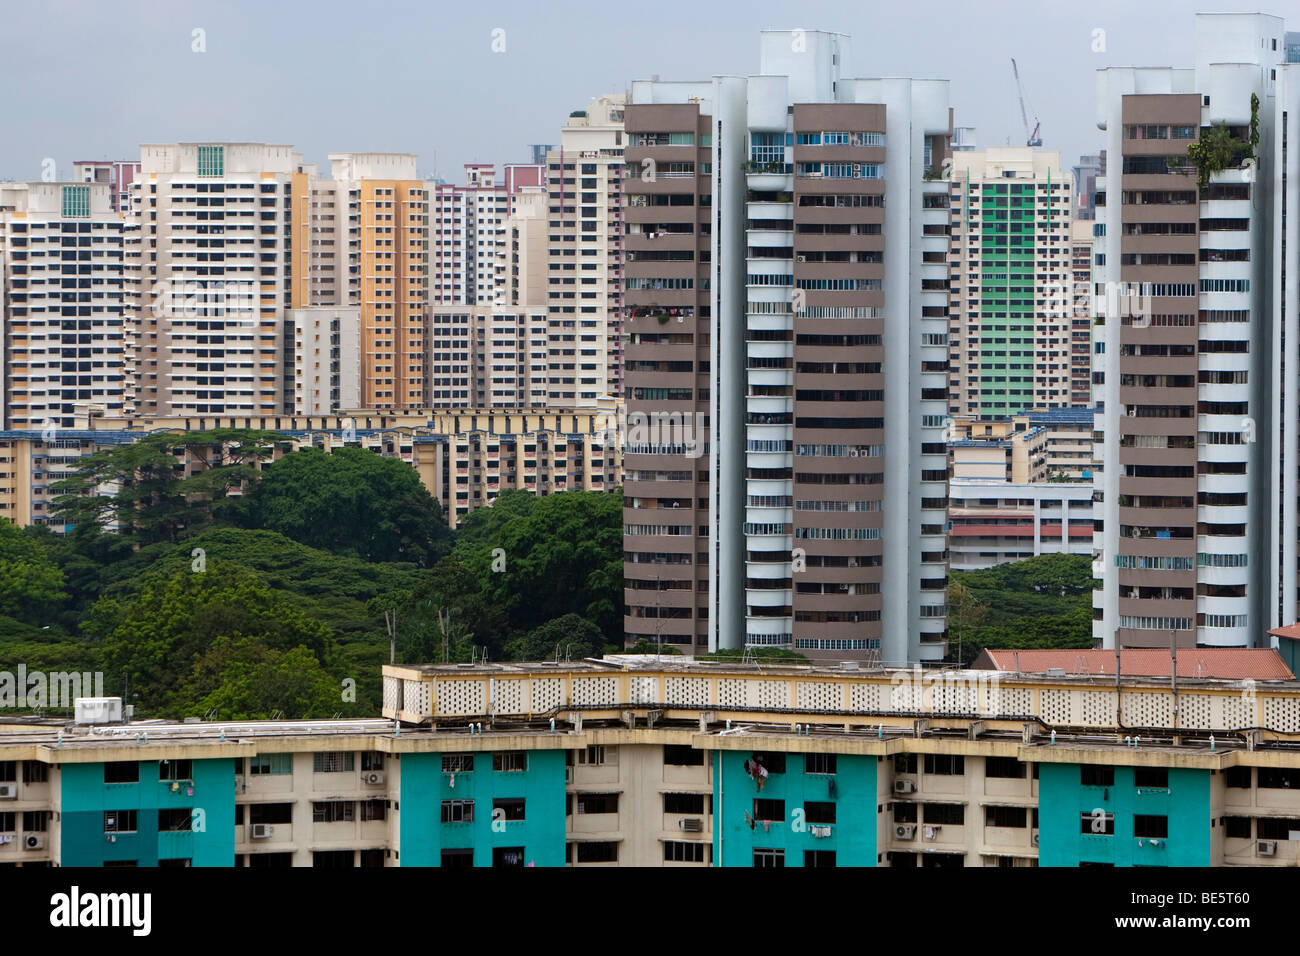 Singapore skyline, multi-storey buildings with cheap apartments, Singapore, Asia - Stock Image